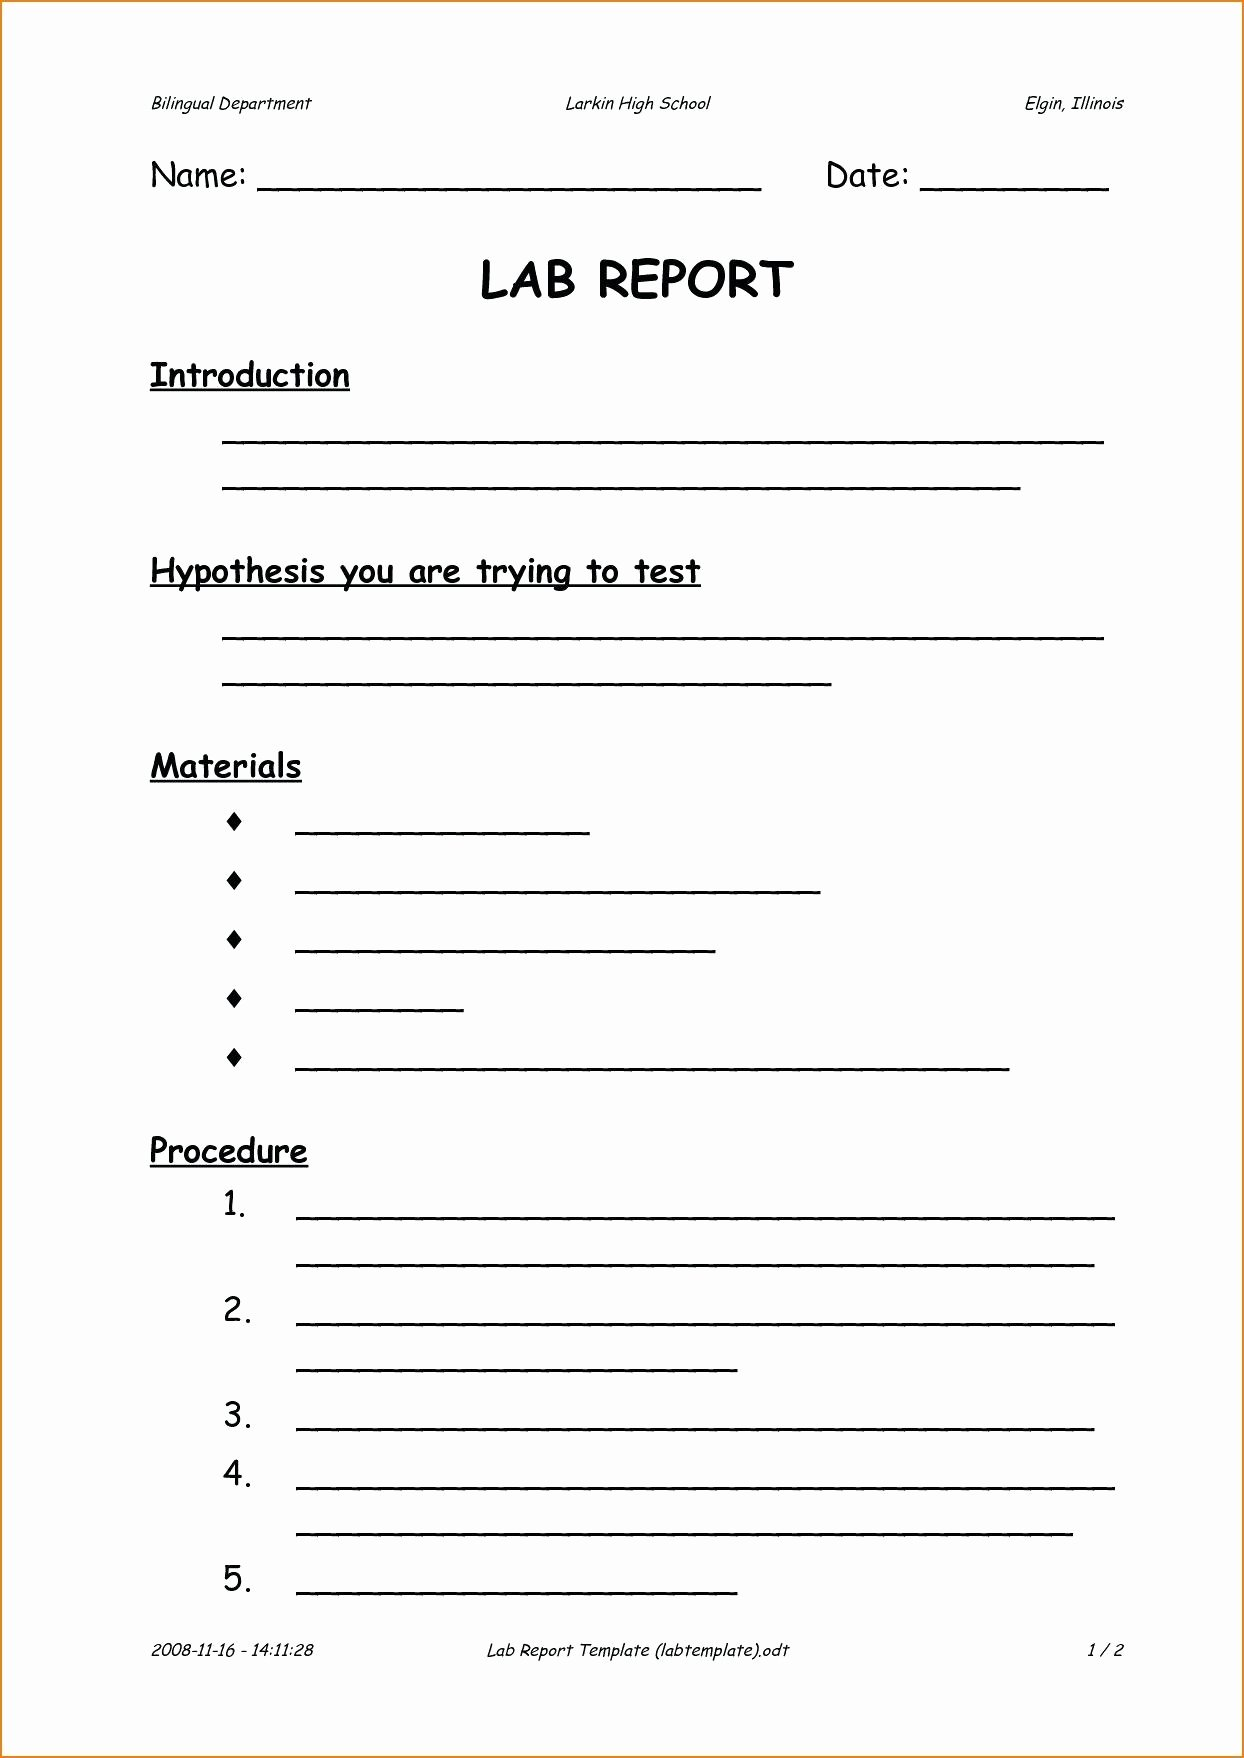 Scientific Method Worksheet High School Inspirational Scientific Method Activity High School – Naturyub